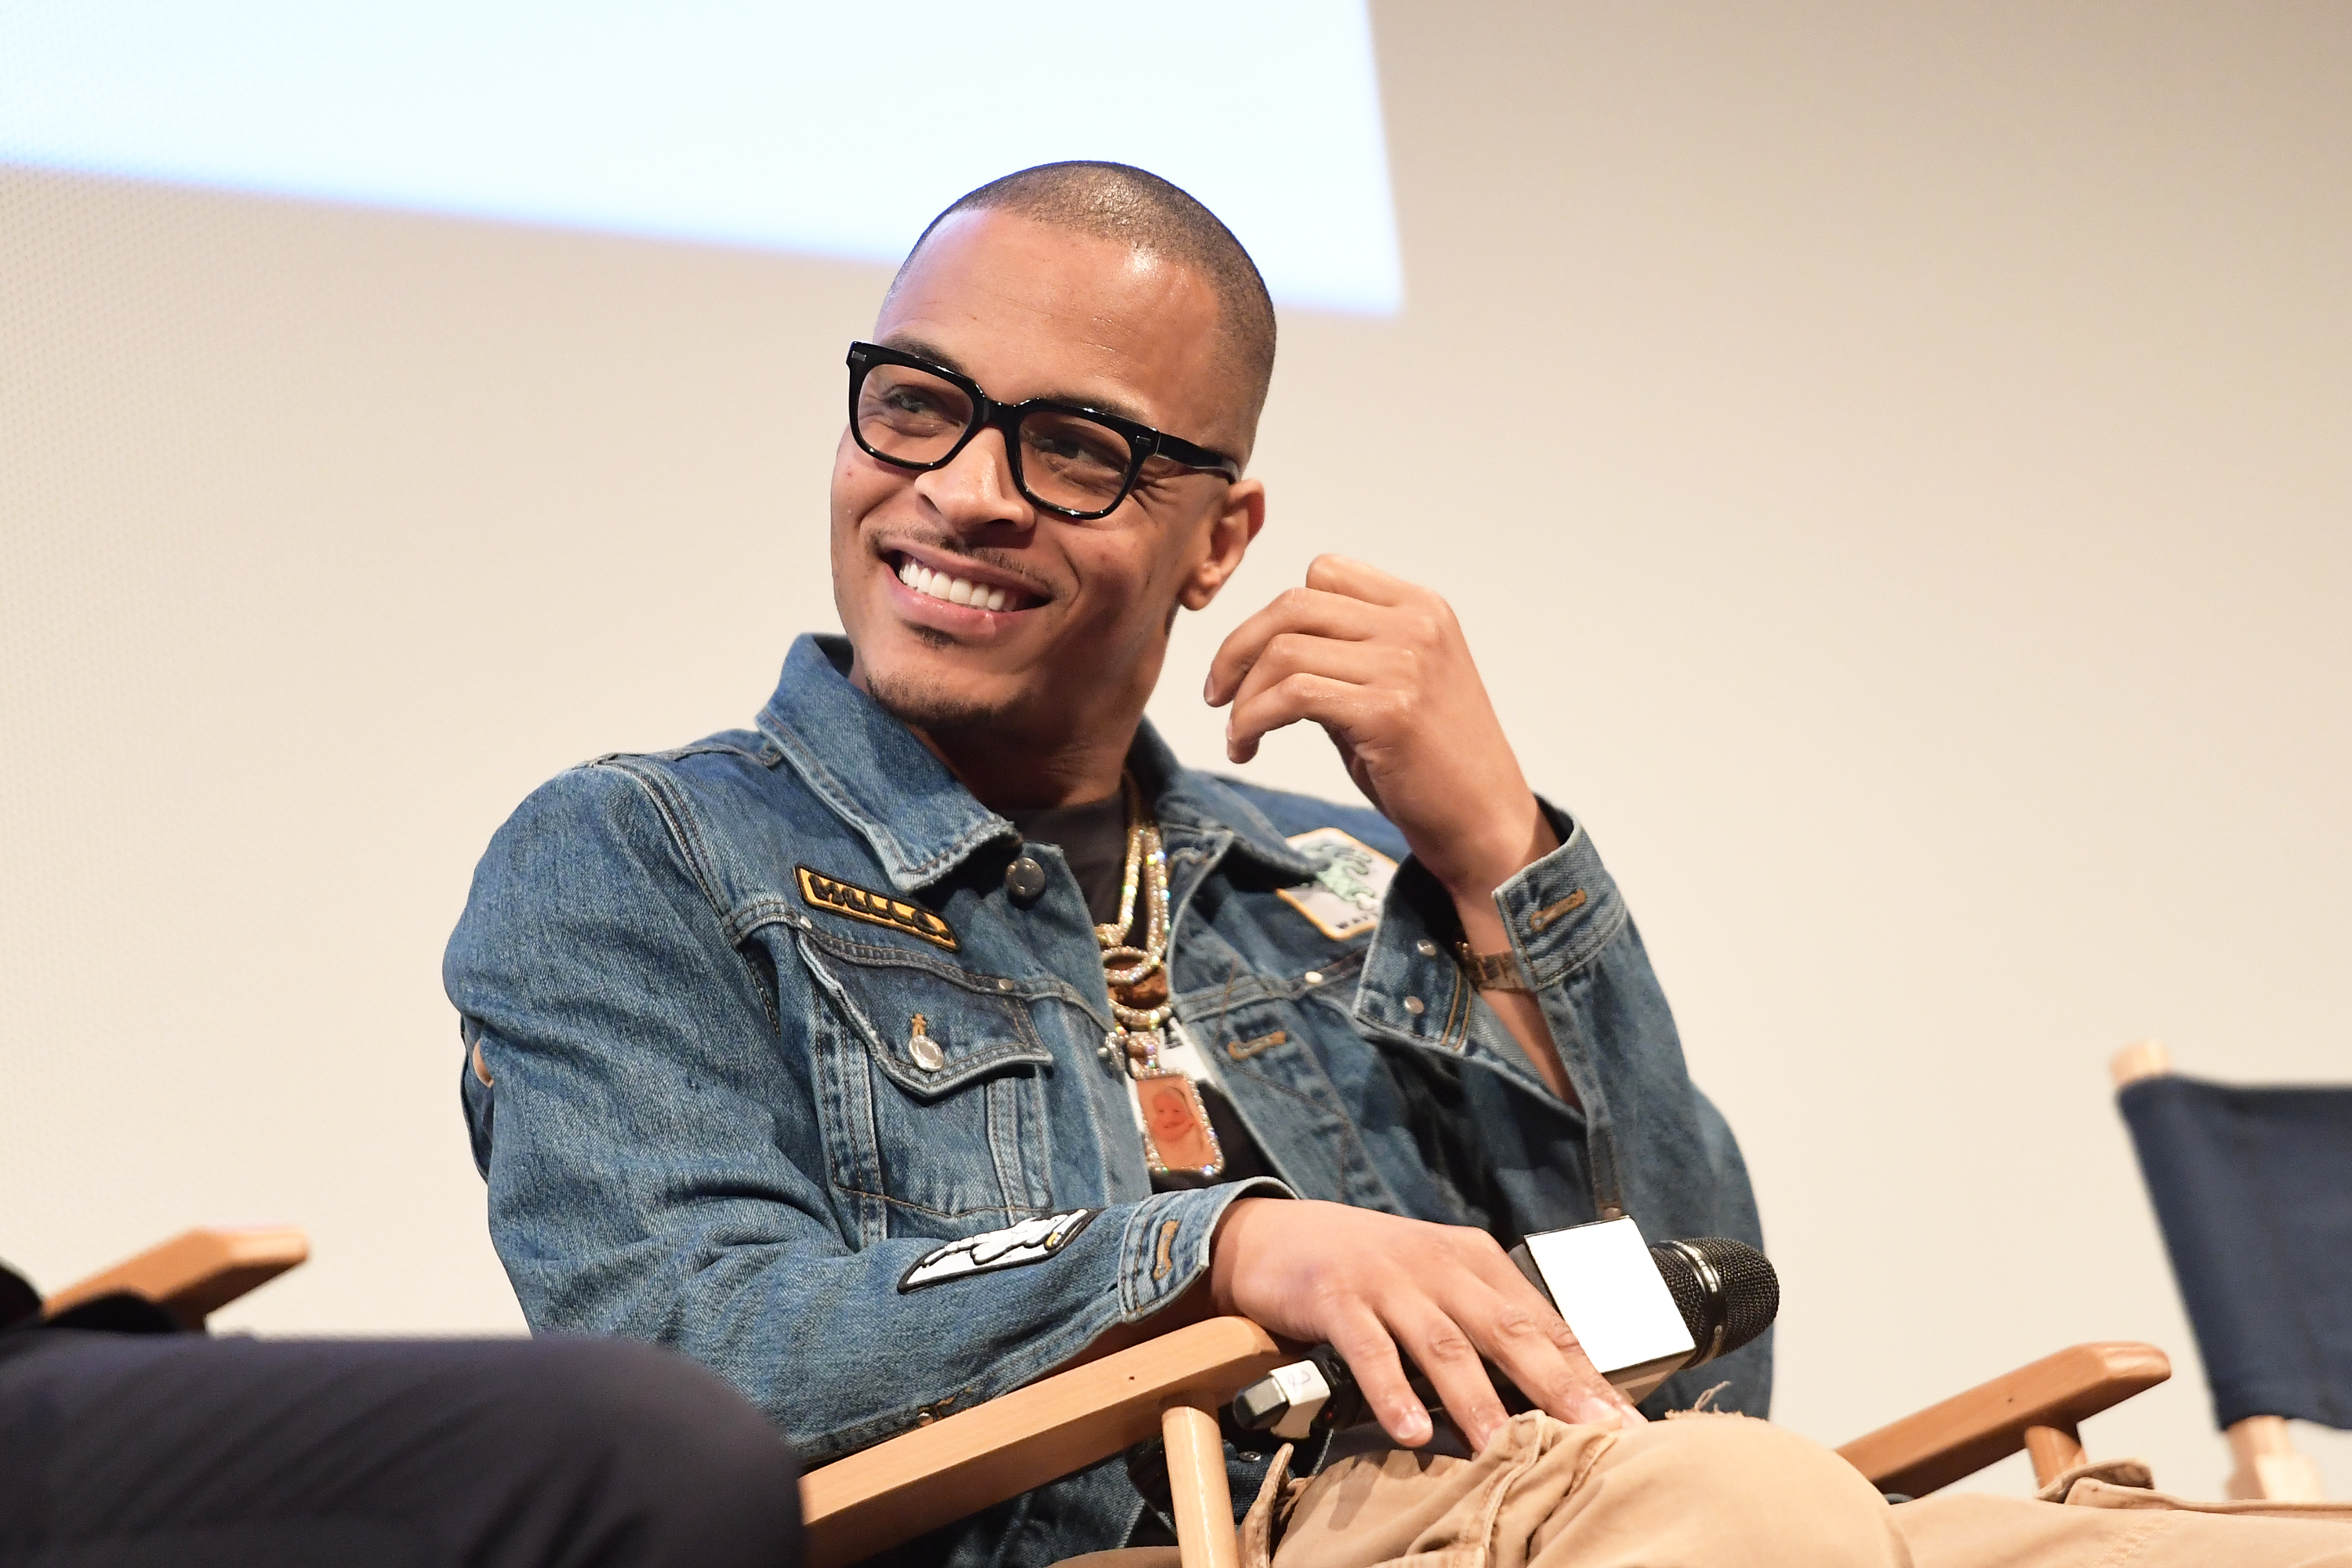 T.I. Helped Bail Out 23 Nonviolent Offenders On Easter